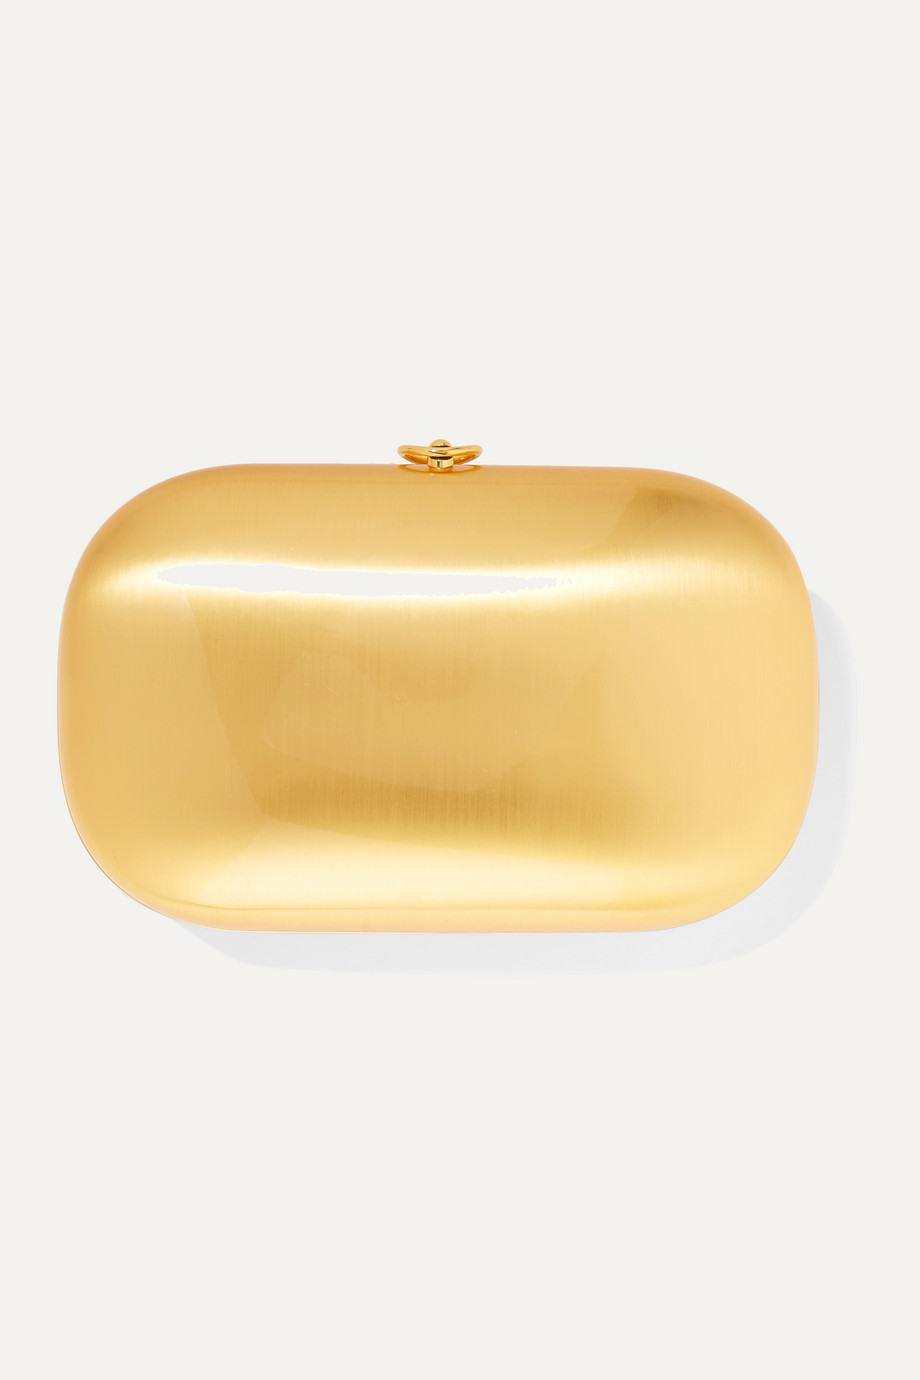 Jeffrey Levinson Elina PLUS brushed 18-karat gold clutch